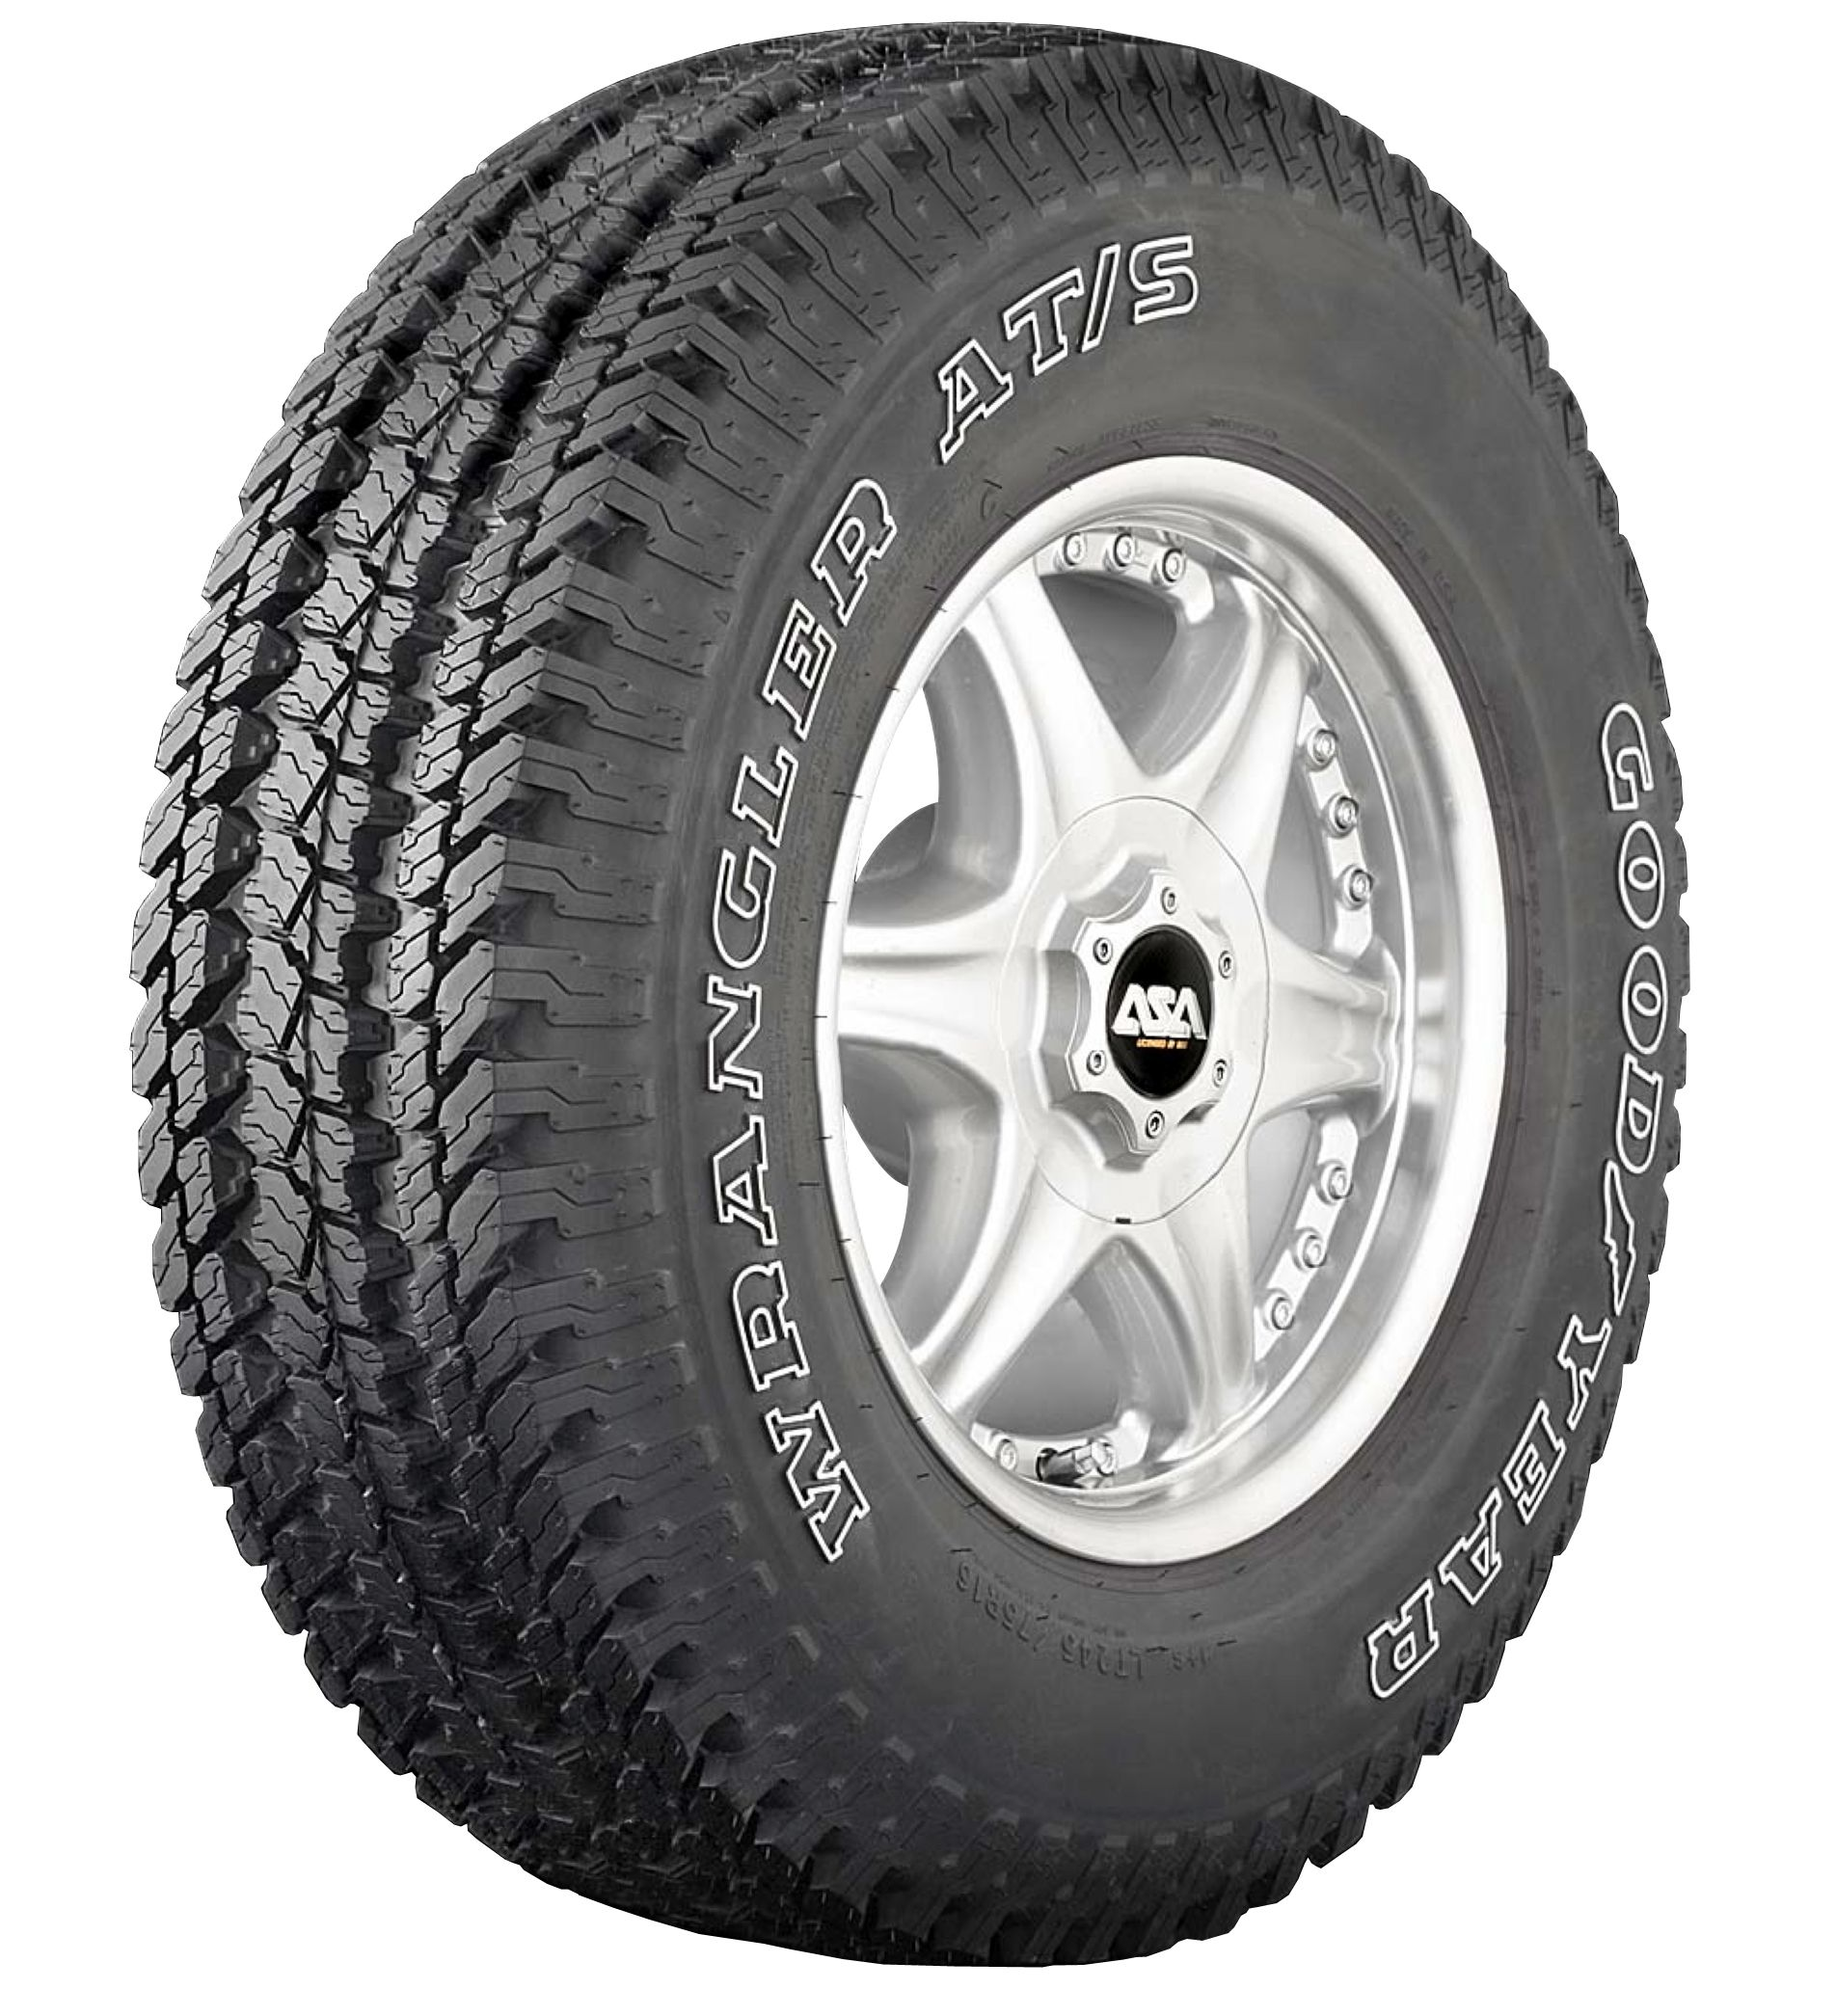 Collection Baby Card 2017 Goodyear Wrangler At S Tire P265 70r17 113s Bsw